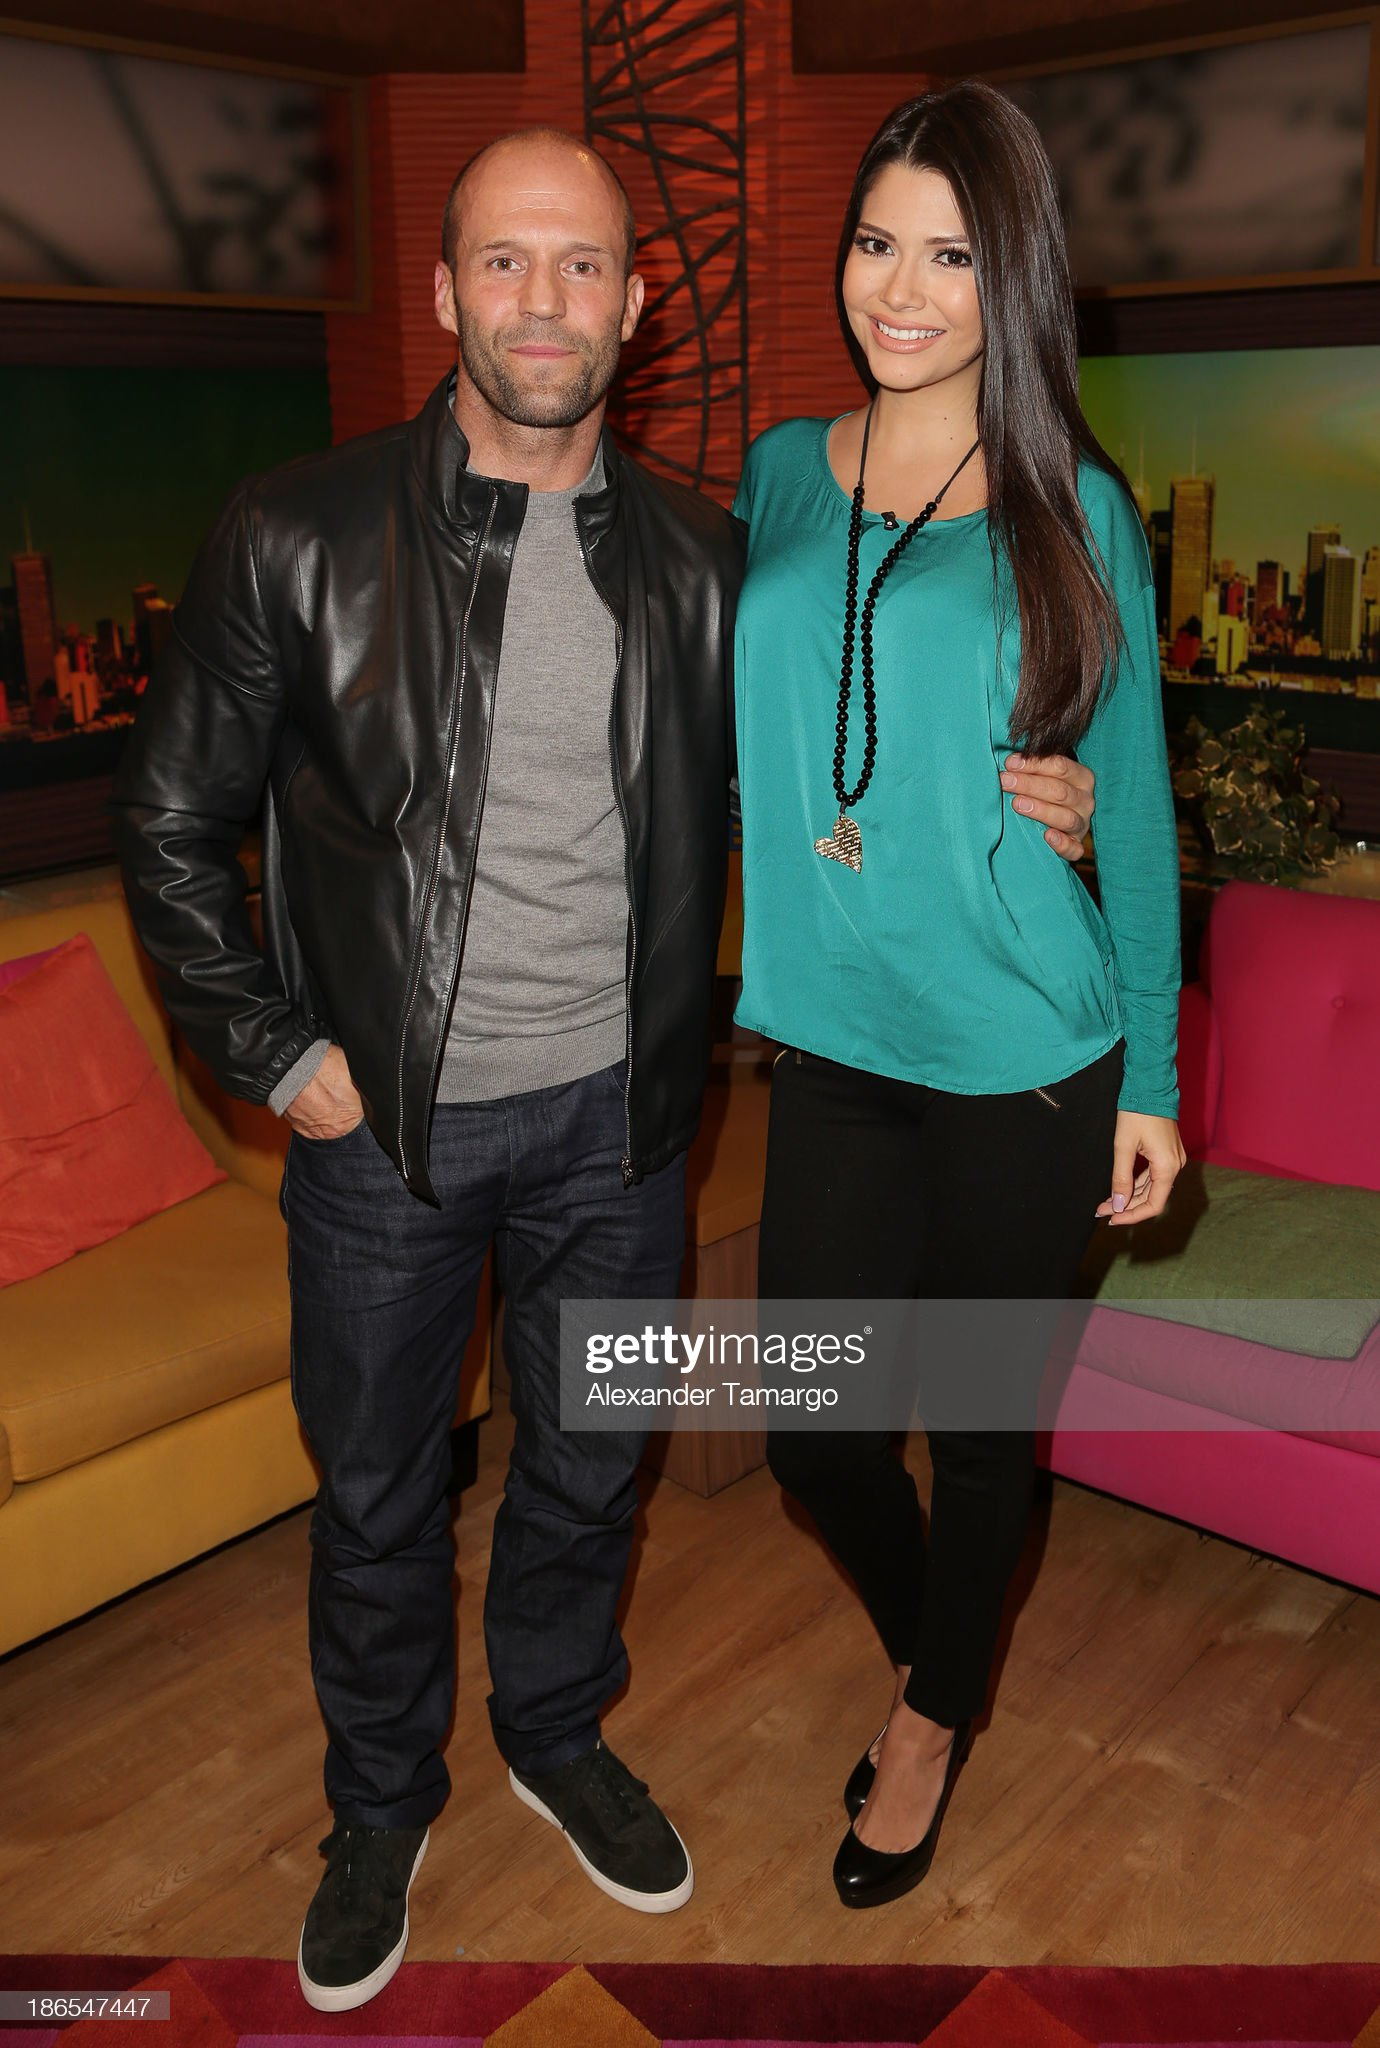 ¿Cuánto mide Jason Statham? - Real height Jason-statham-and-ana-patricia-gonzalez-are-seen-on-the-set-of-to-picture-id186547447?s=2048x2048